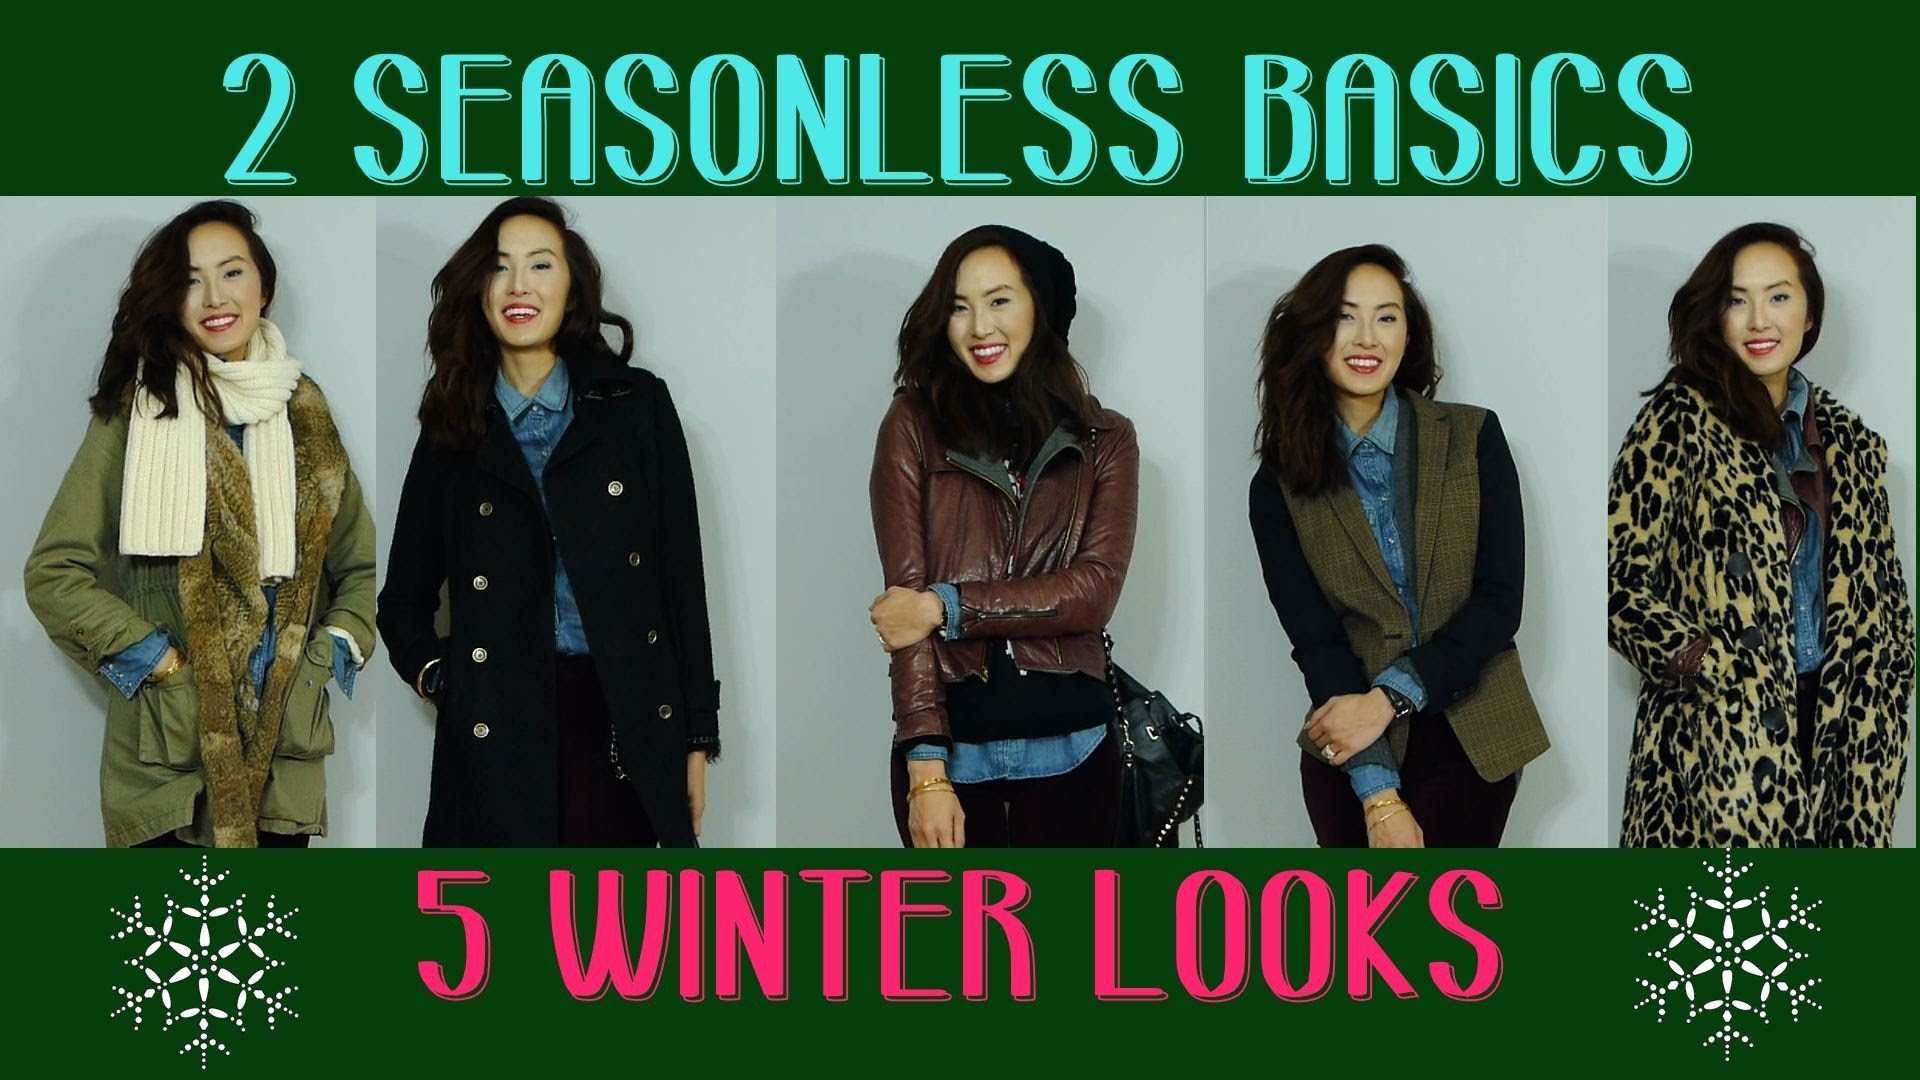 2 Seasonless Basics, 5 Winter Looks